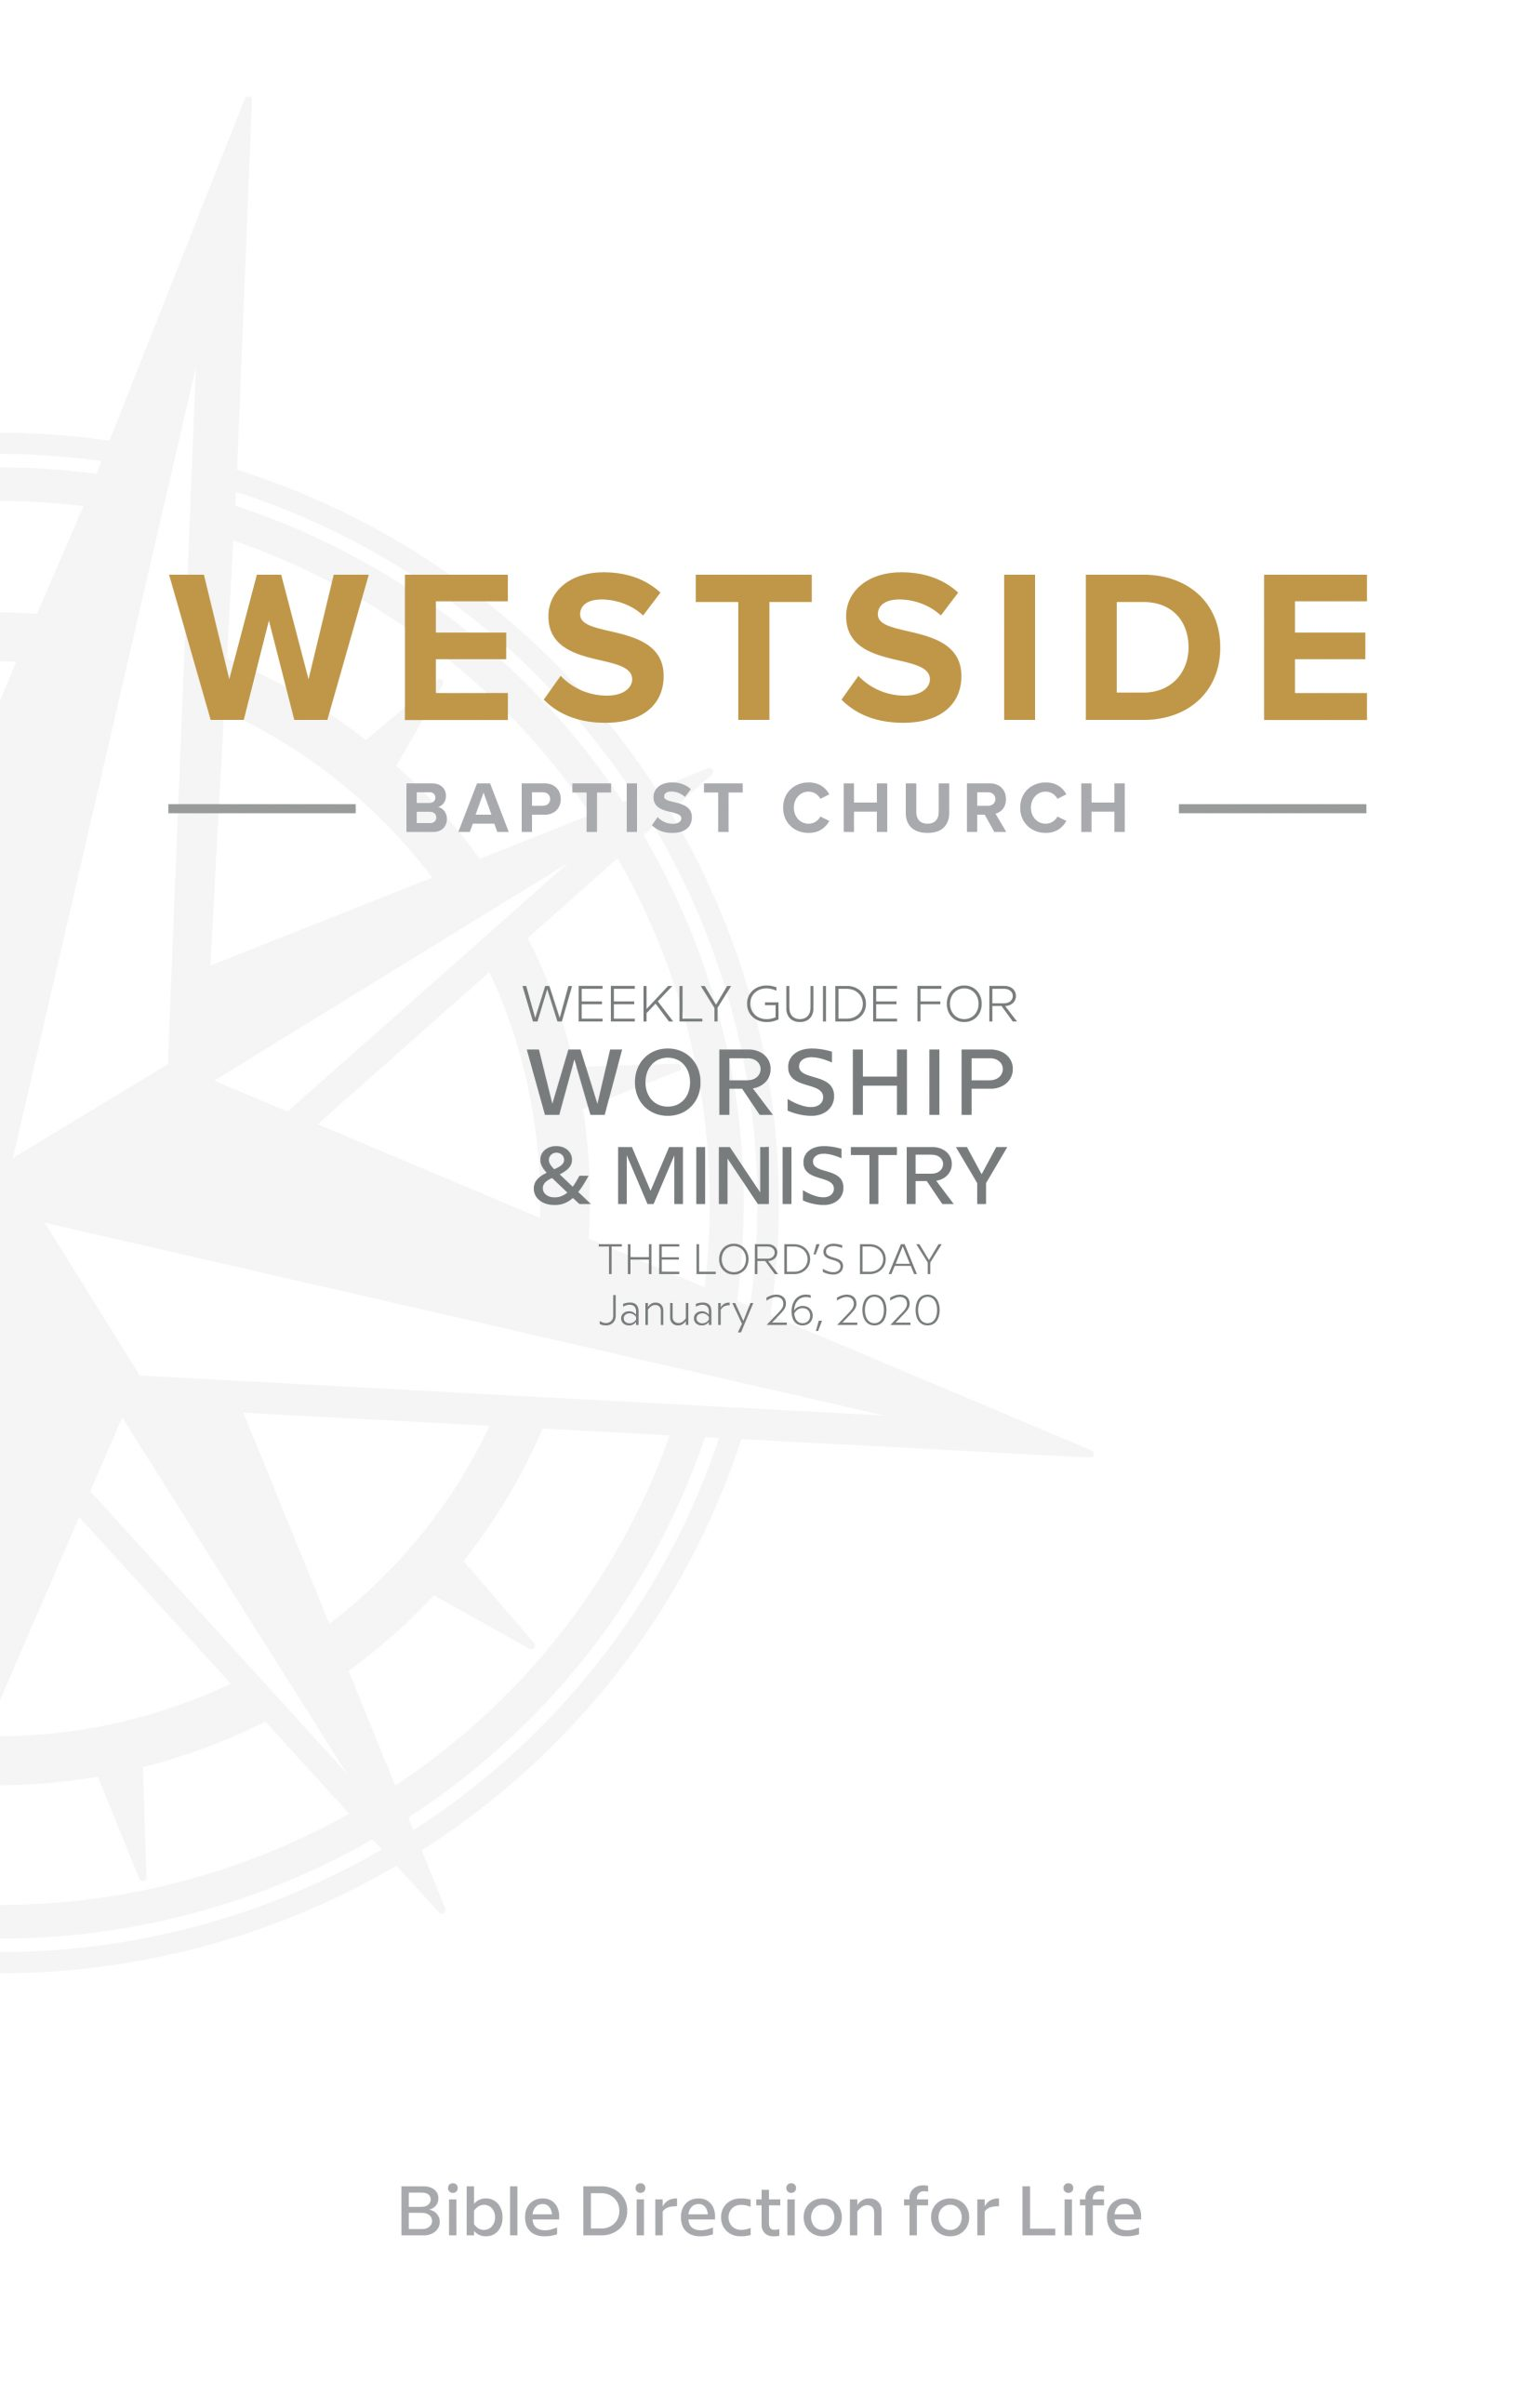 Weekly Guide for Worship and Ministry—January 26